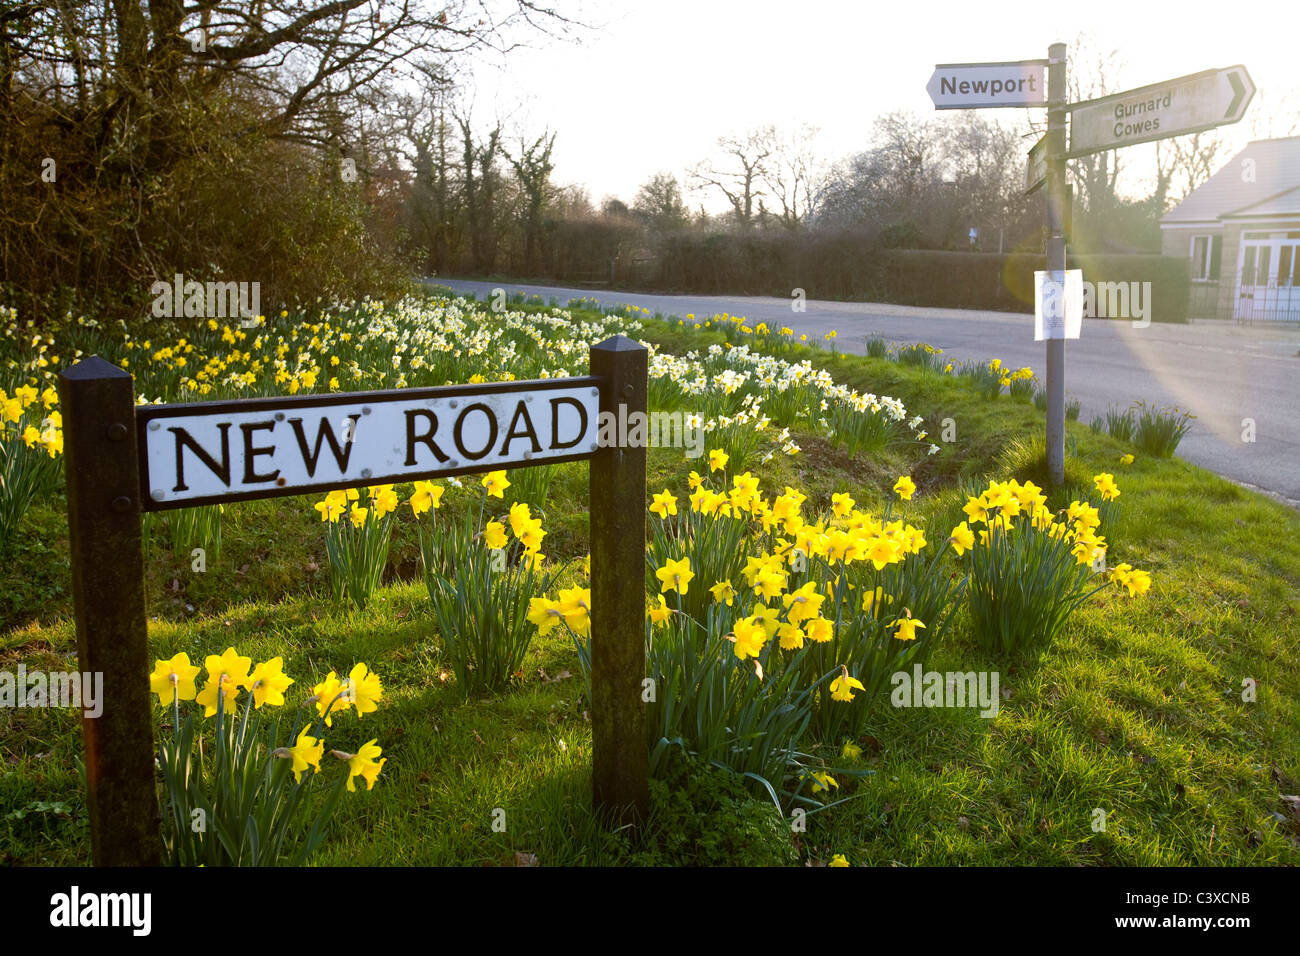 New Road, Porchfield, Daffodils, nature, Rural Roads, Isle of Wight, England, UK, - Stock Image